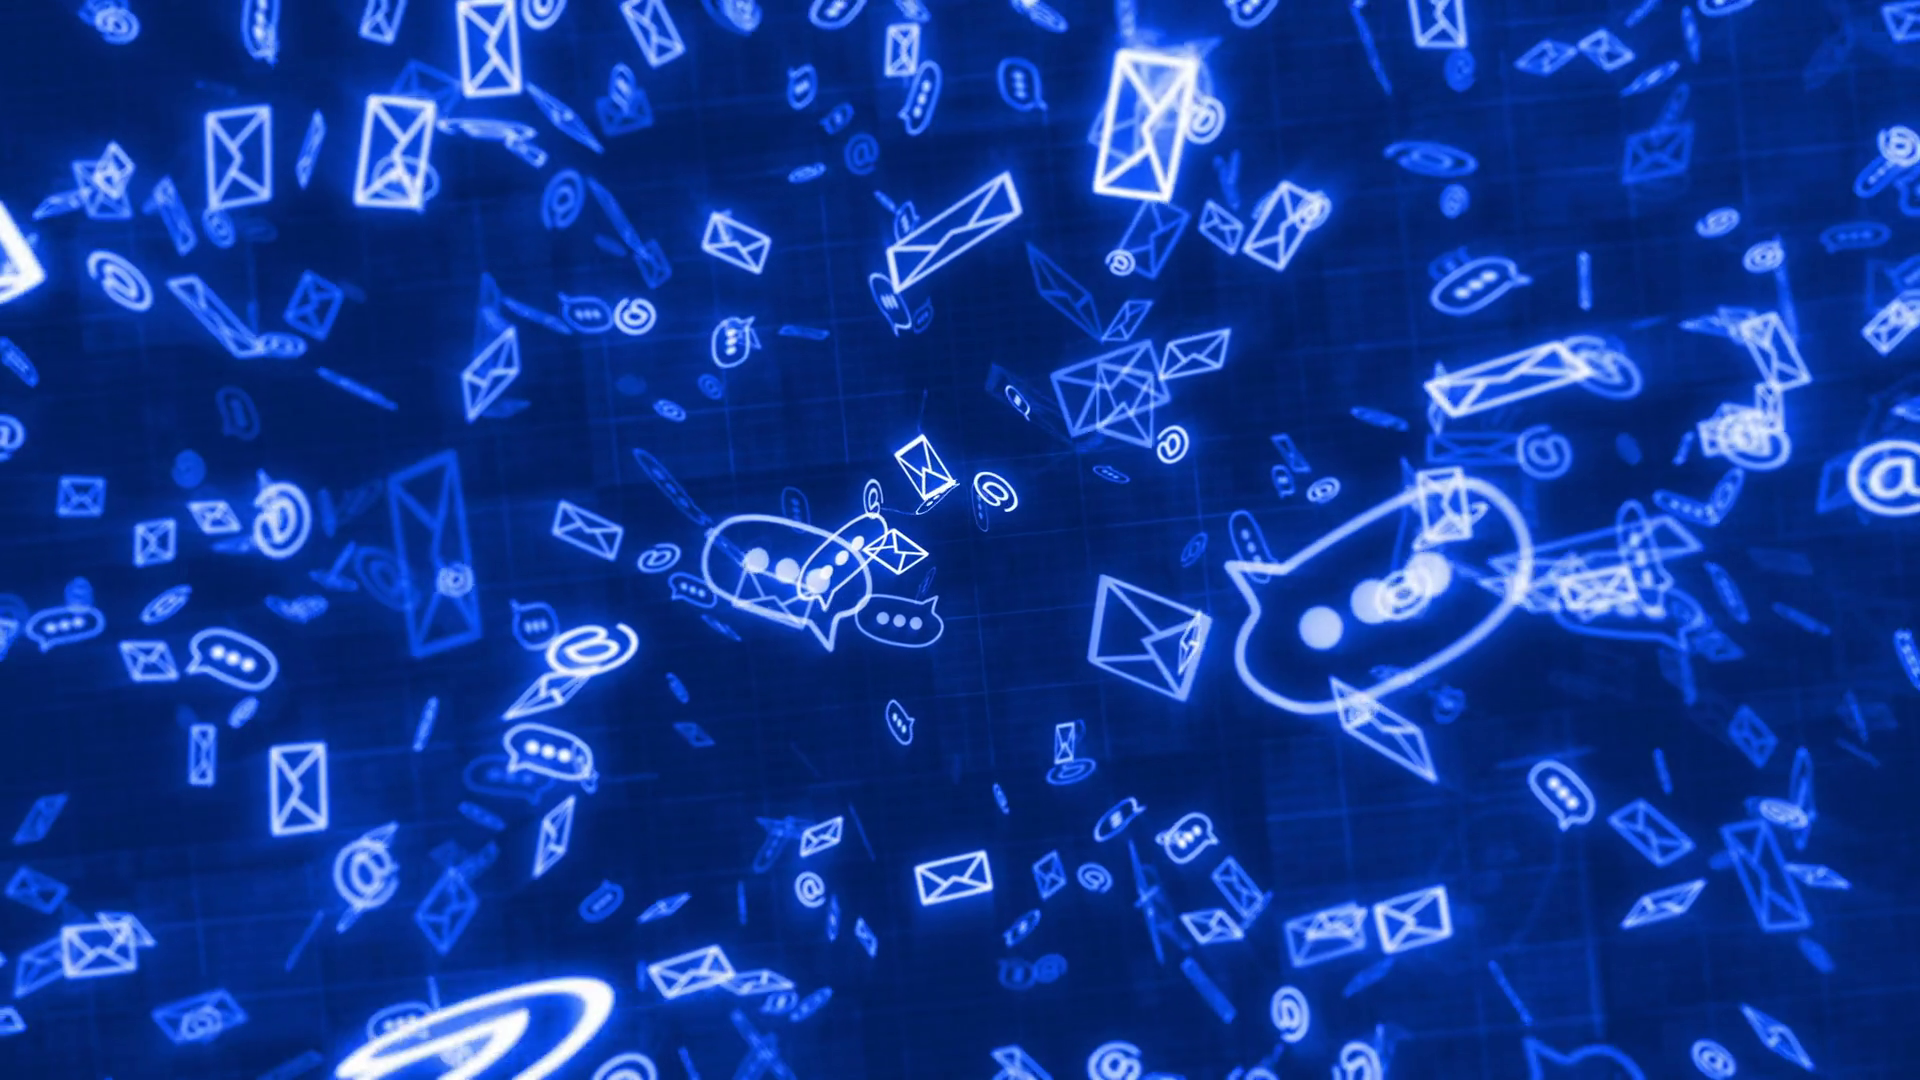 Social Media messaging on a dark blue background Sms E mail Chat 1920x1080